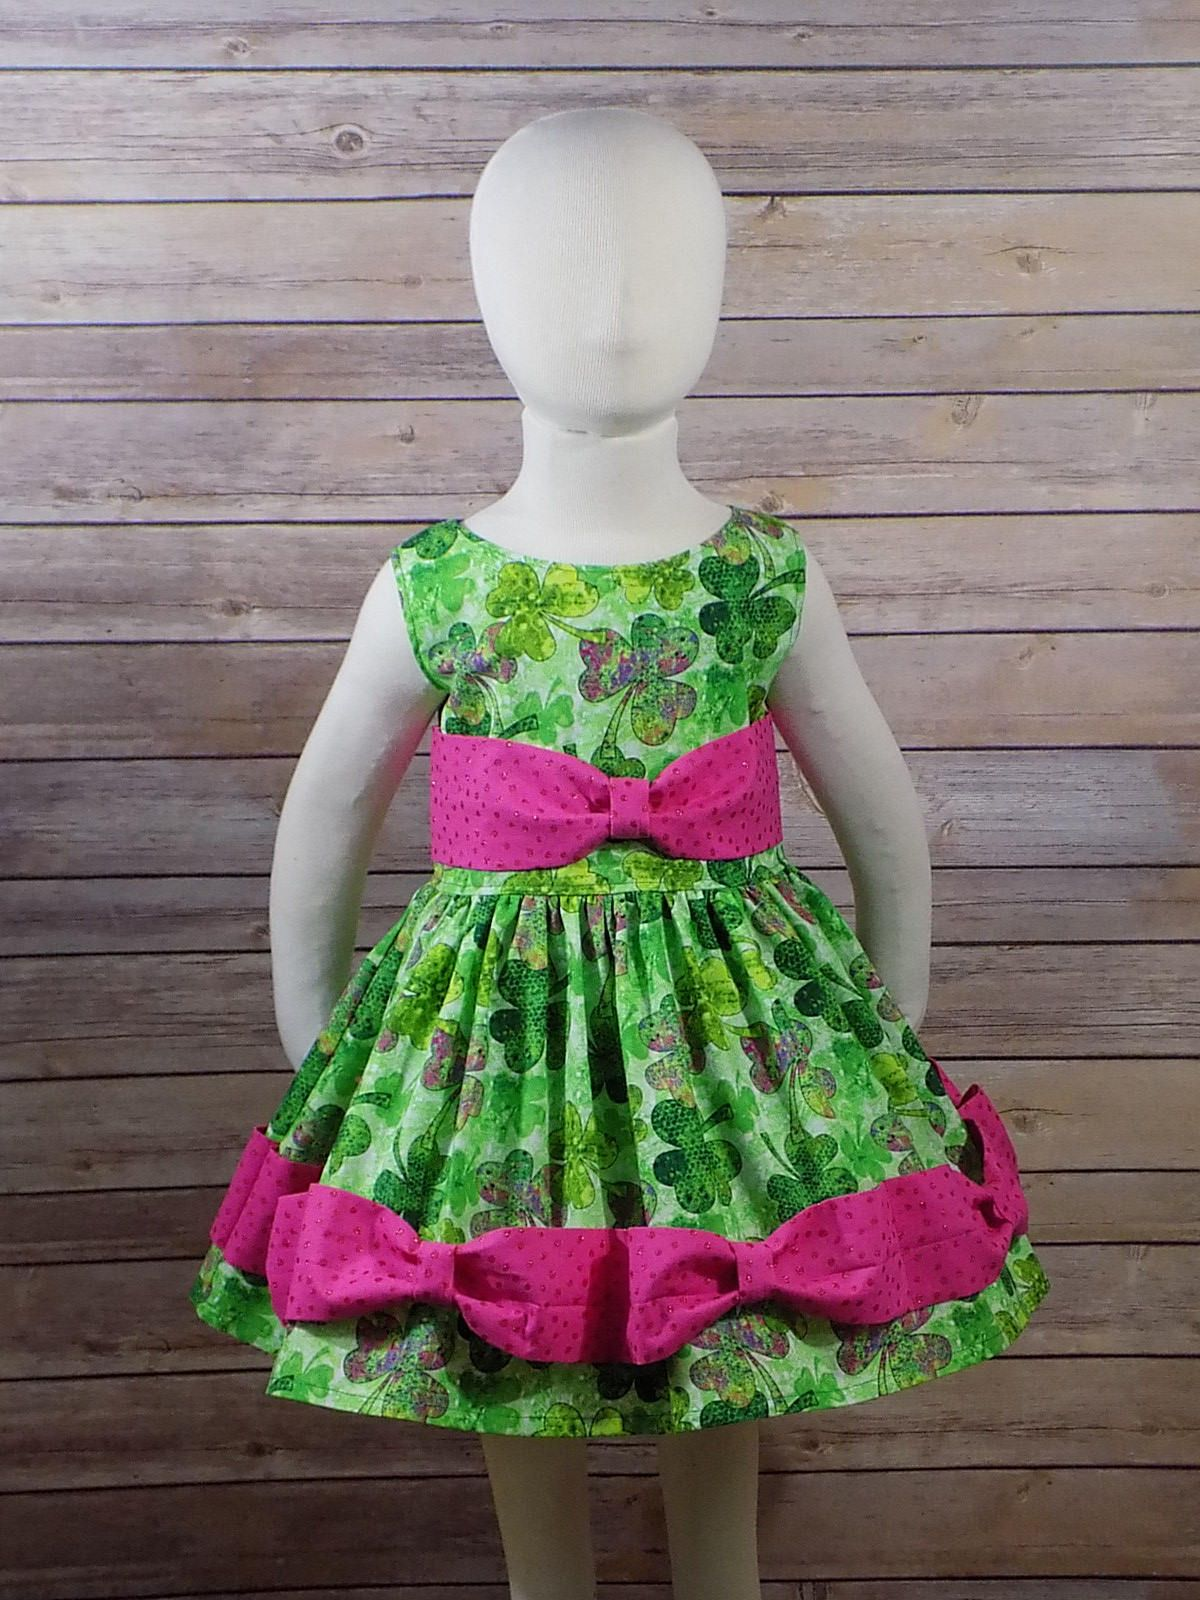 Infant  6 9 12 18 24 month 2T 3T 4T 5T 6 Elastic Waist Ruffle Pants Lace Patty Toddler Boutique Girls St Patrick Day Baby Shamrock